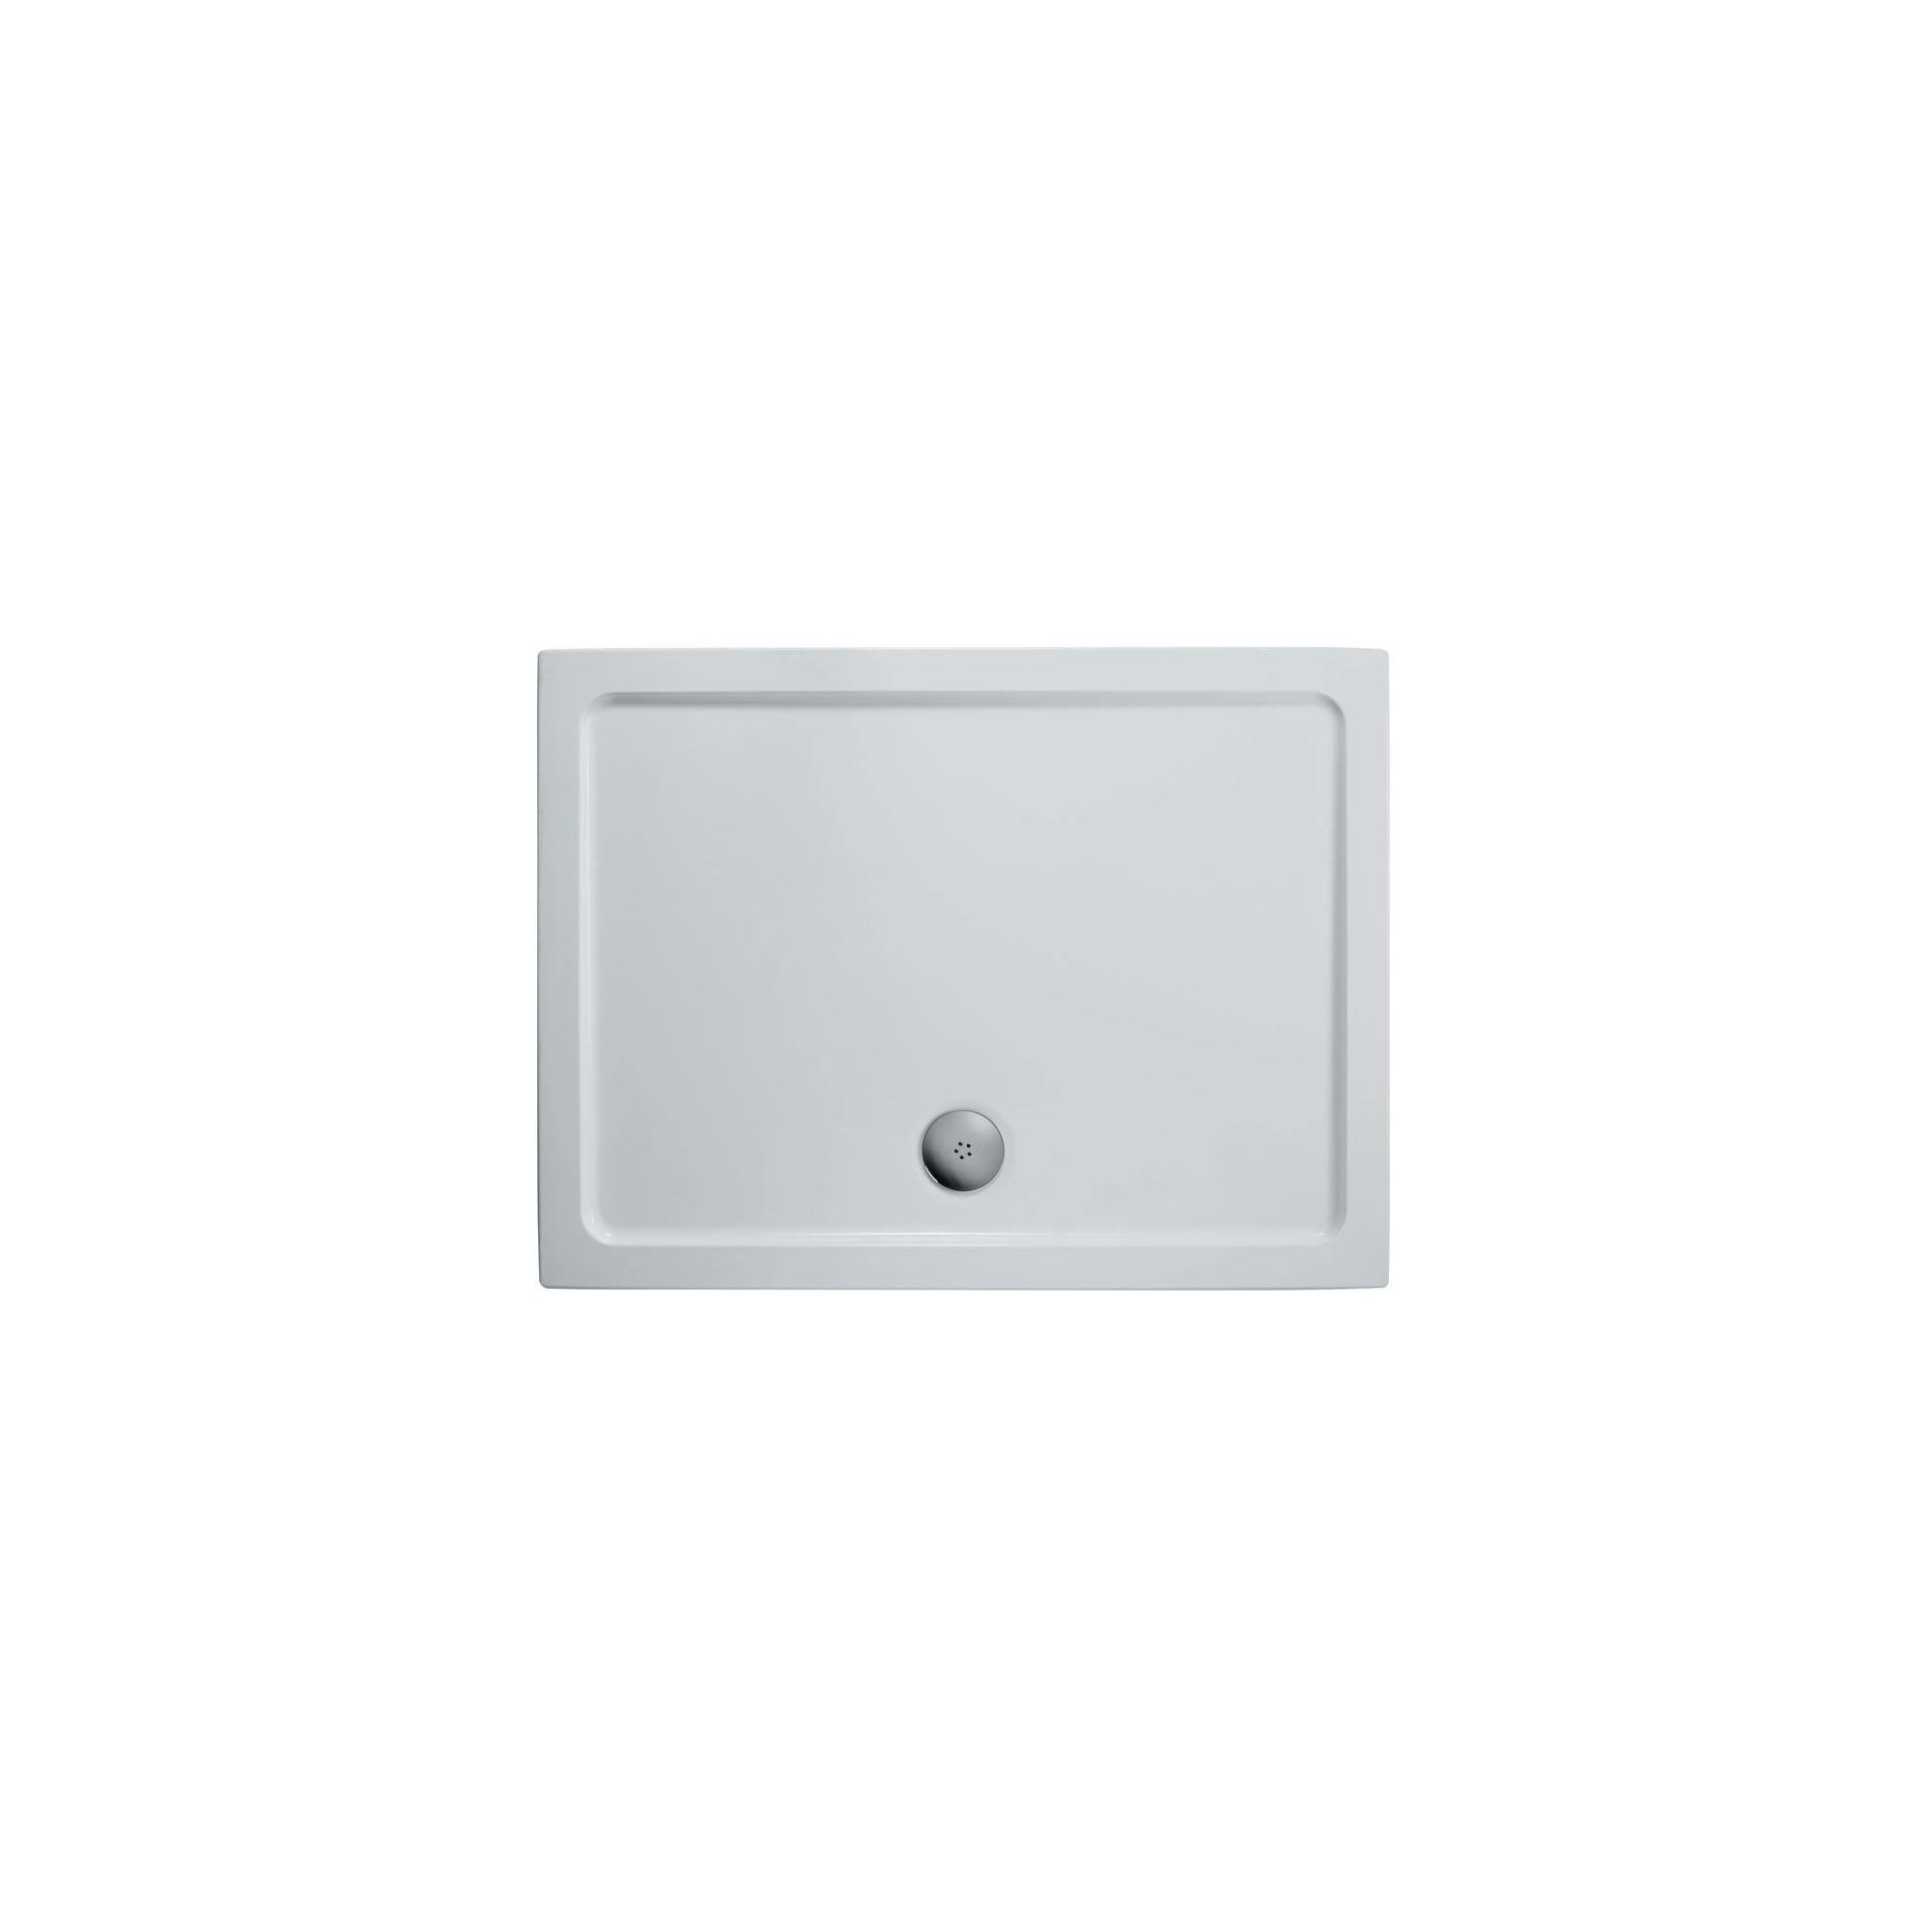 Ideal Standard Kubo Pivot Door Alcove Shower Enclosure, 900mm x 800mm, Bright Silver Frame, Low Profile Tray at Tesco Direct